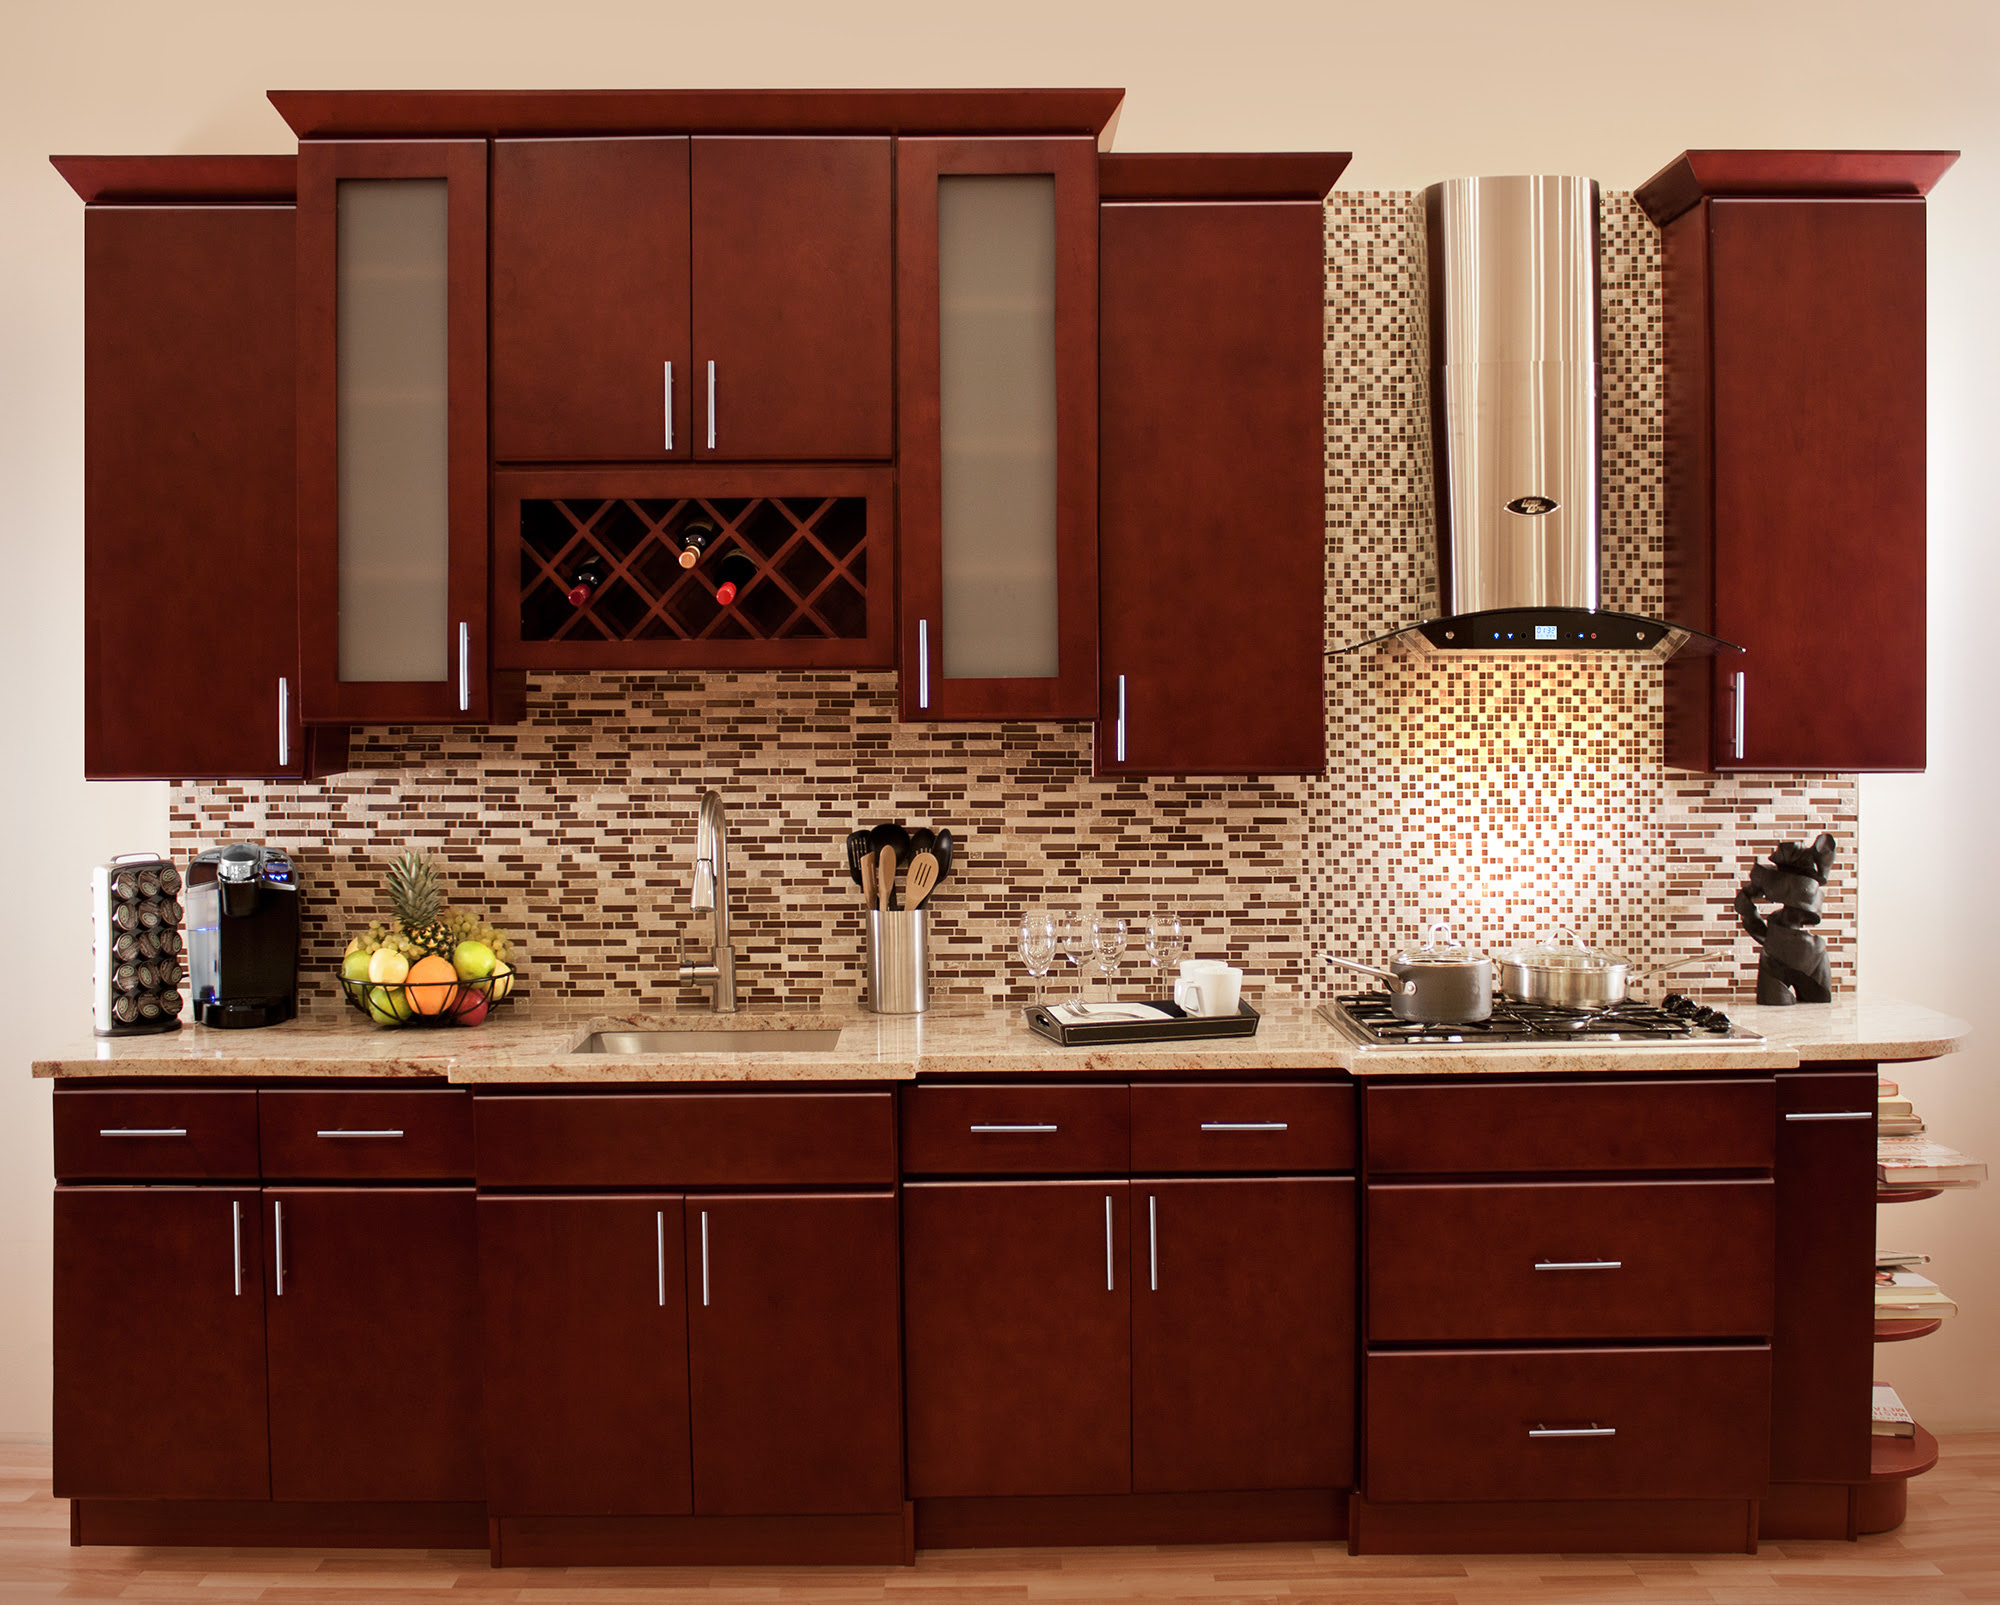 Modern Cherry Wood Kitchen Cabinets Kitchens Ideas Window Treatment For Bedroom Atmosphere Small Medium And White Dark Designs Apppie Org